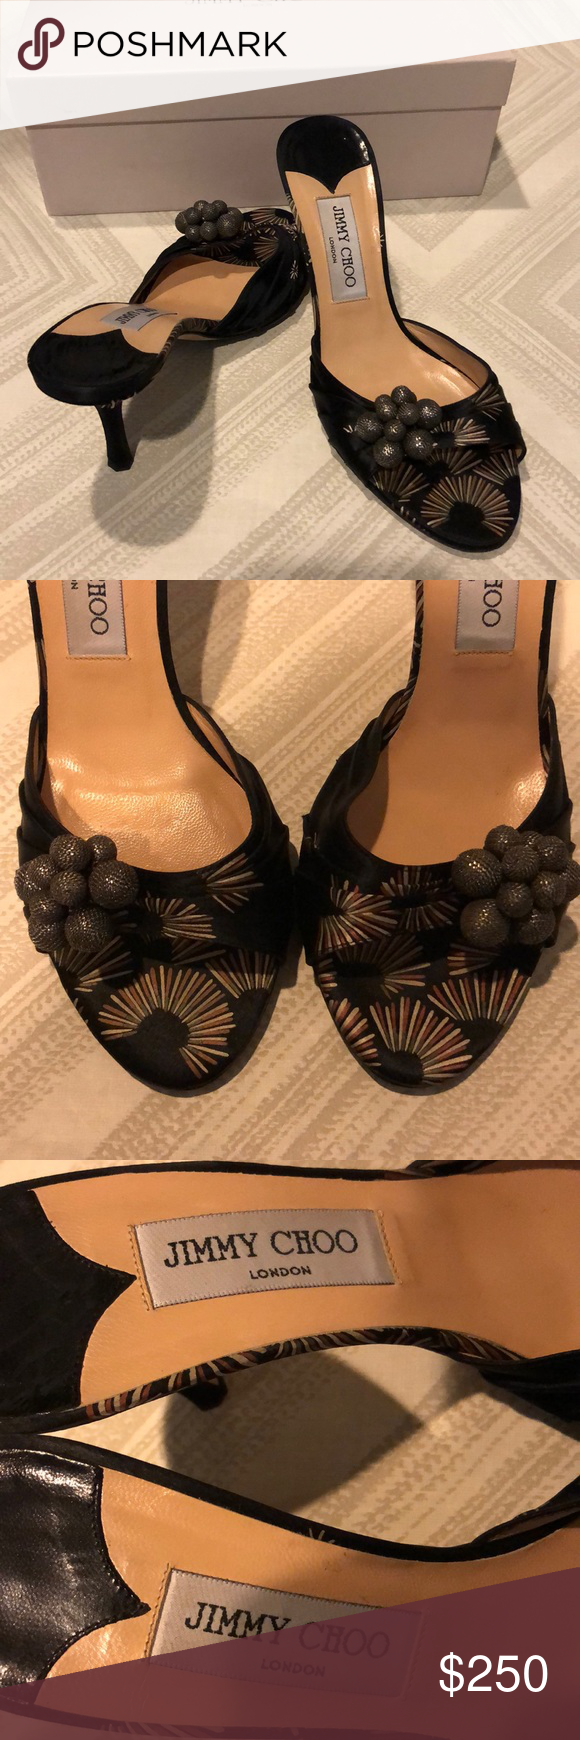 Jimmy Choo Black Fabric with Silver